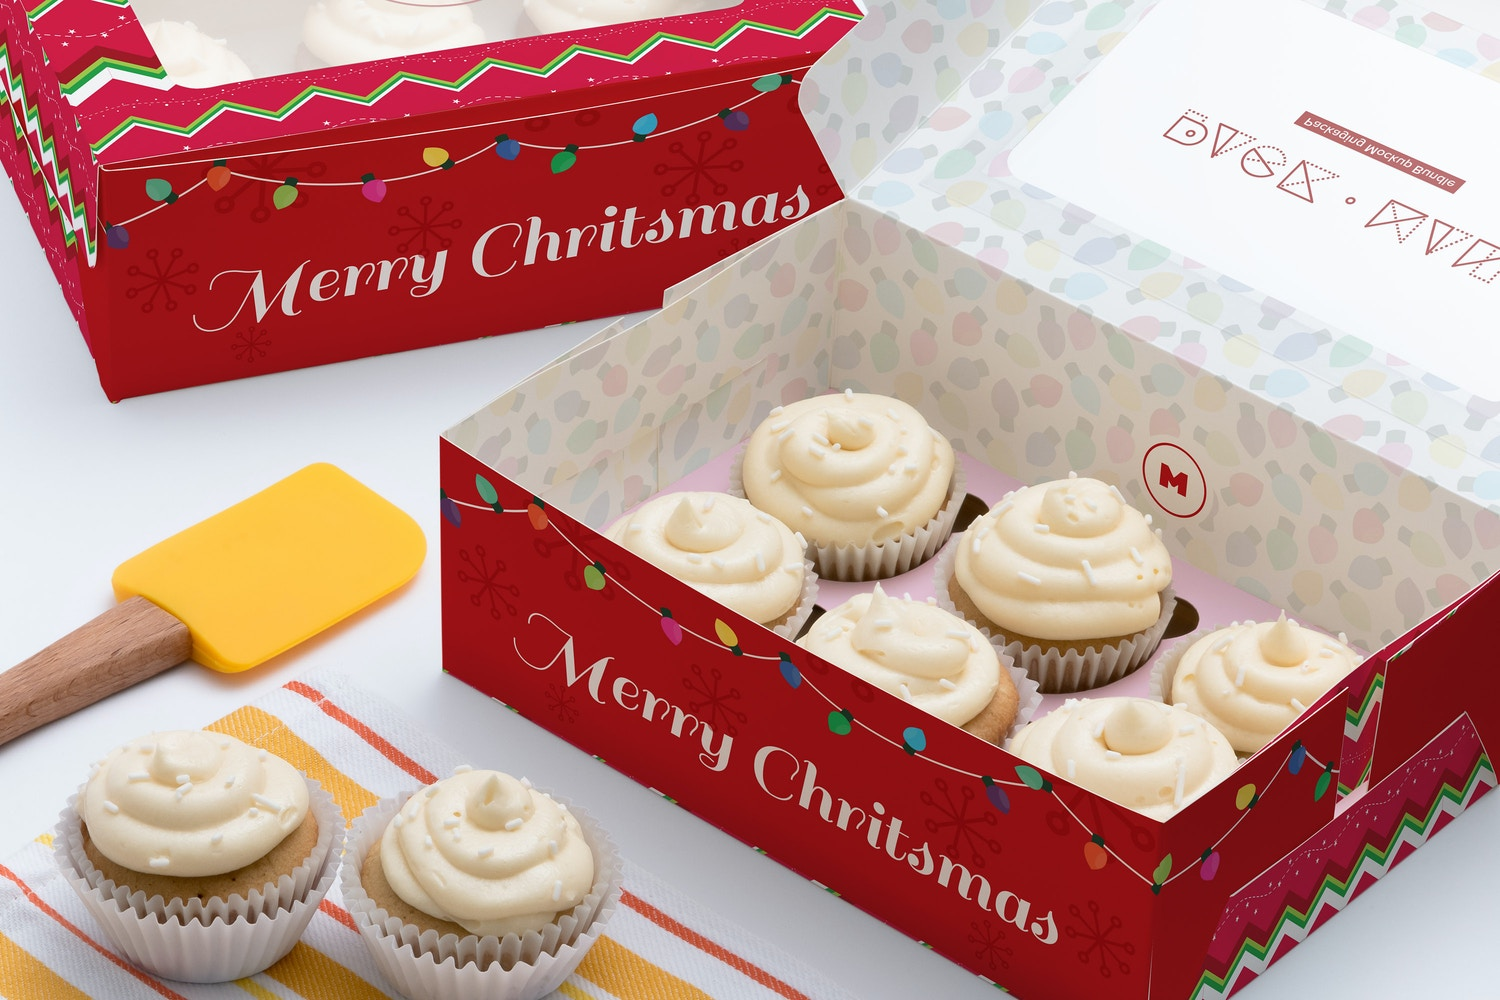 Six Cupcake Box Mockup 01 by Ktyellow  on Original Mockups